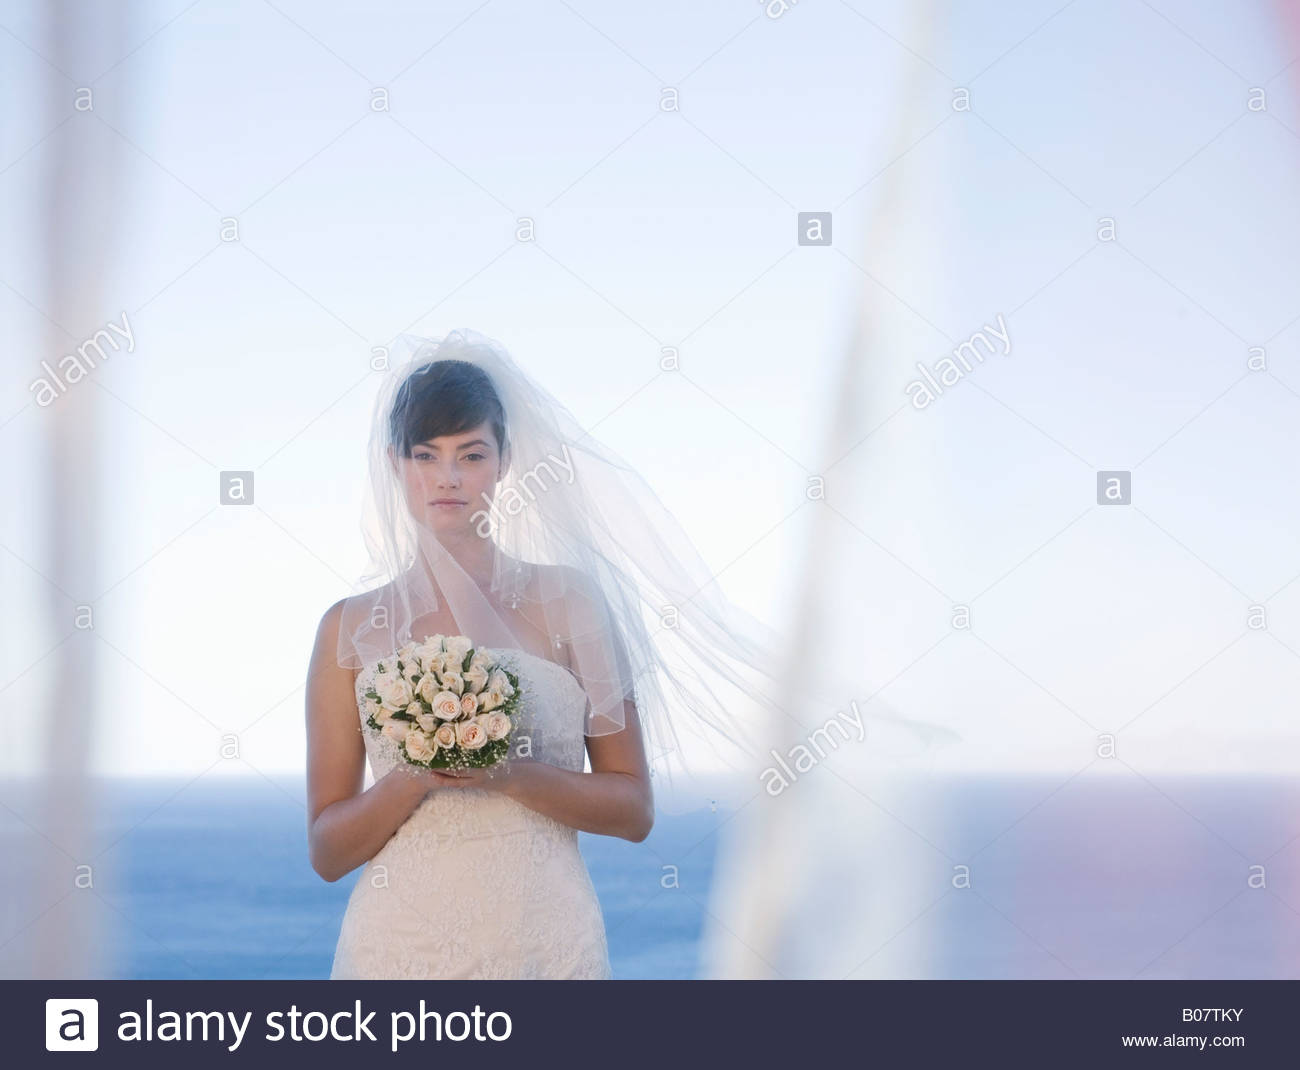 A bride holding her bouquet - Stock Image